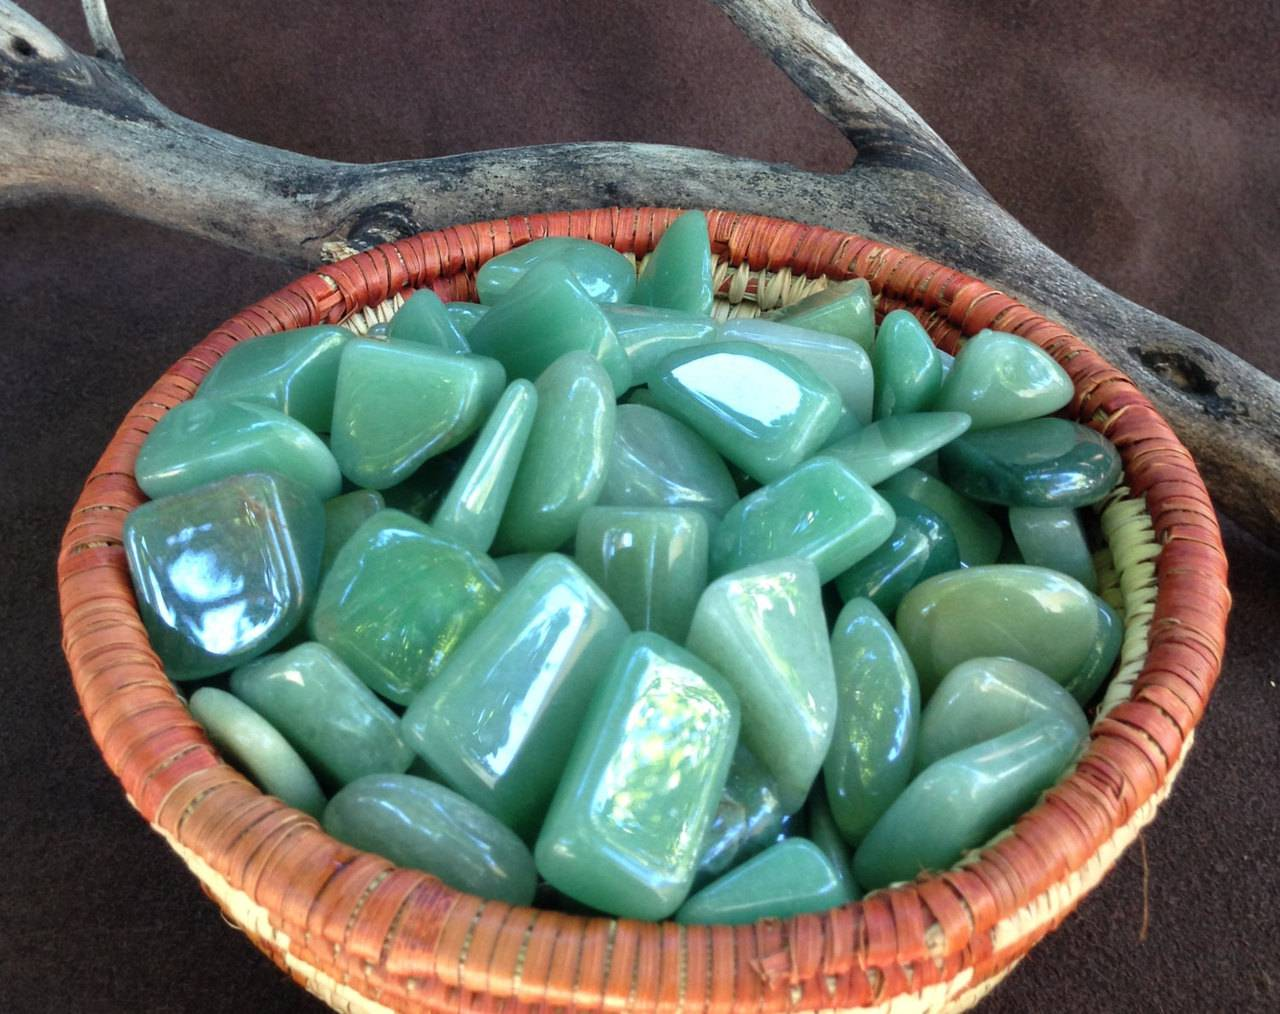 Green Aventurine pair of tumbled stones - The Growth and Abundance Stone - for prosperity & attraction of new people and resources